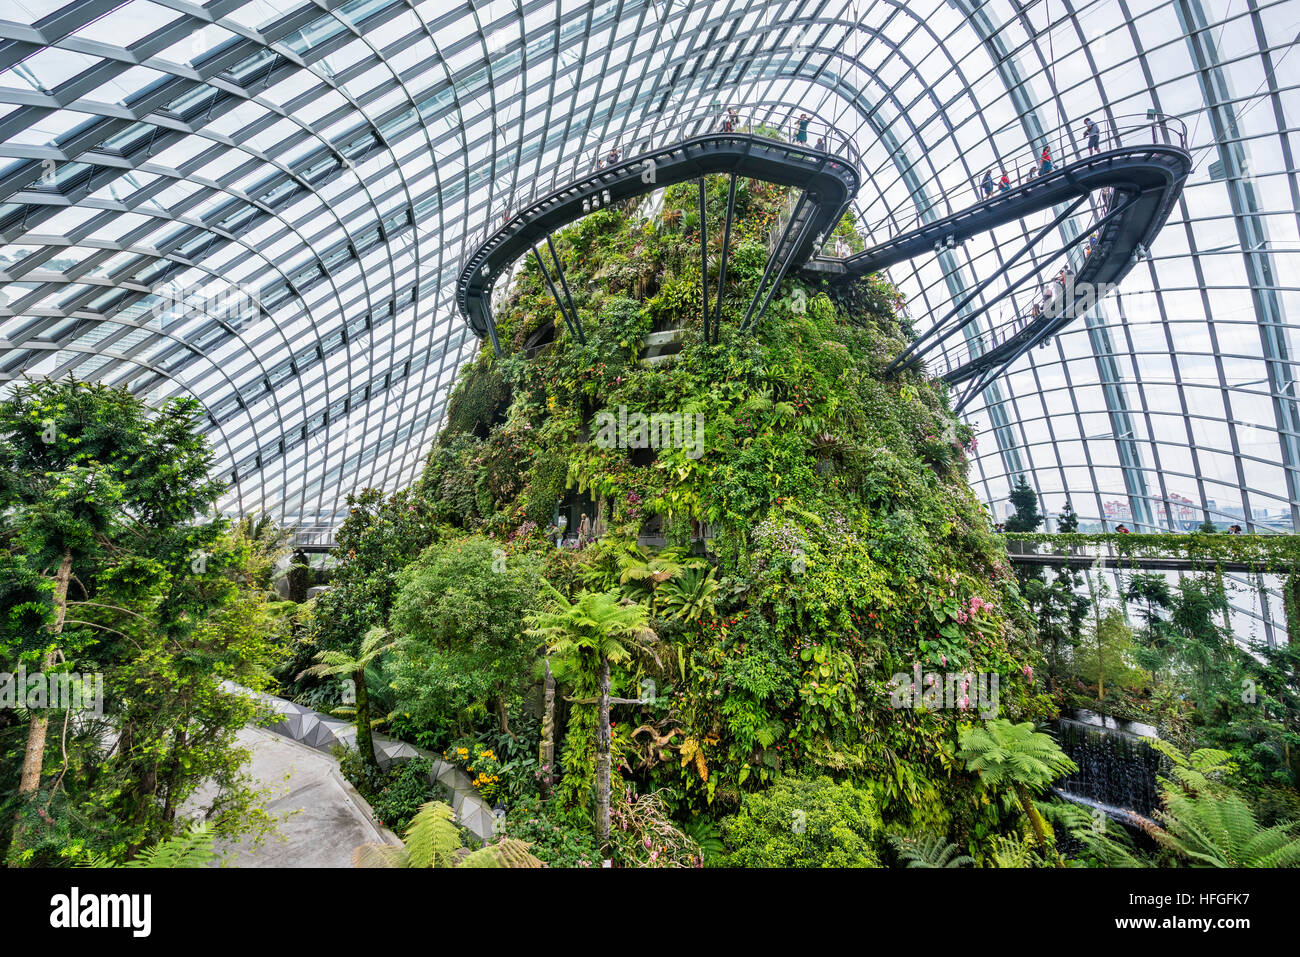 Singapore, Gardens by the Bay, view of the Treetop and Cloud Walks at the lush vegetation mountain within the giant - Stock Image